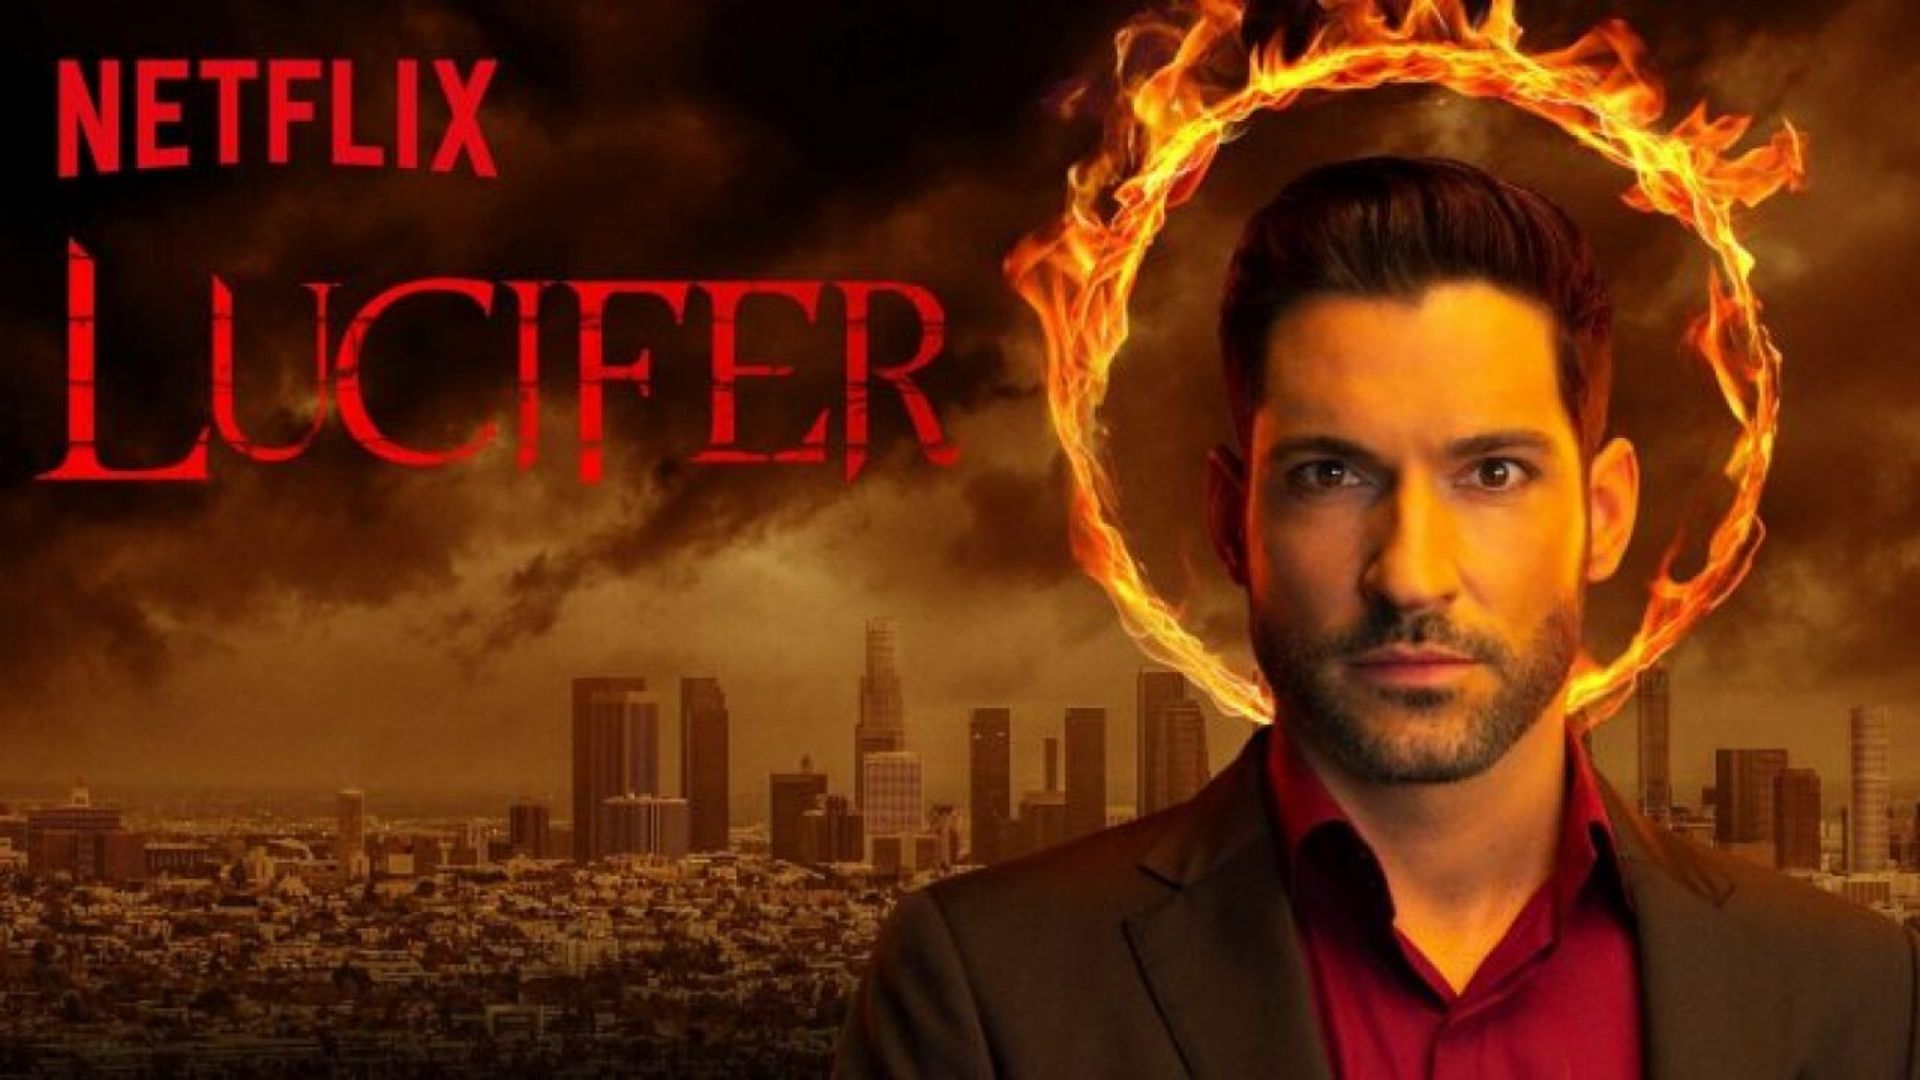 """""""Lucifer is coming in 2020 with its endid season 5, see all the details!"""